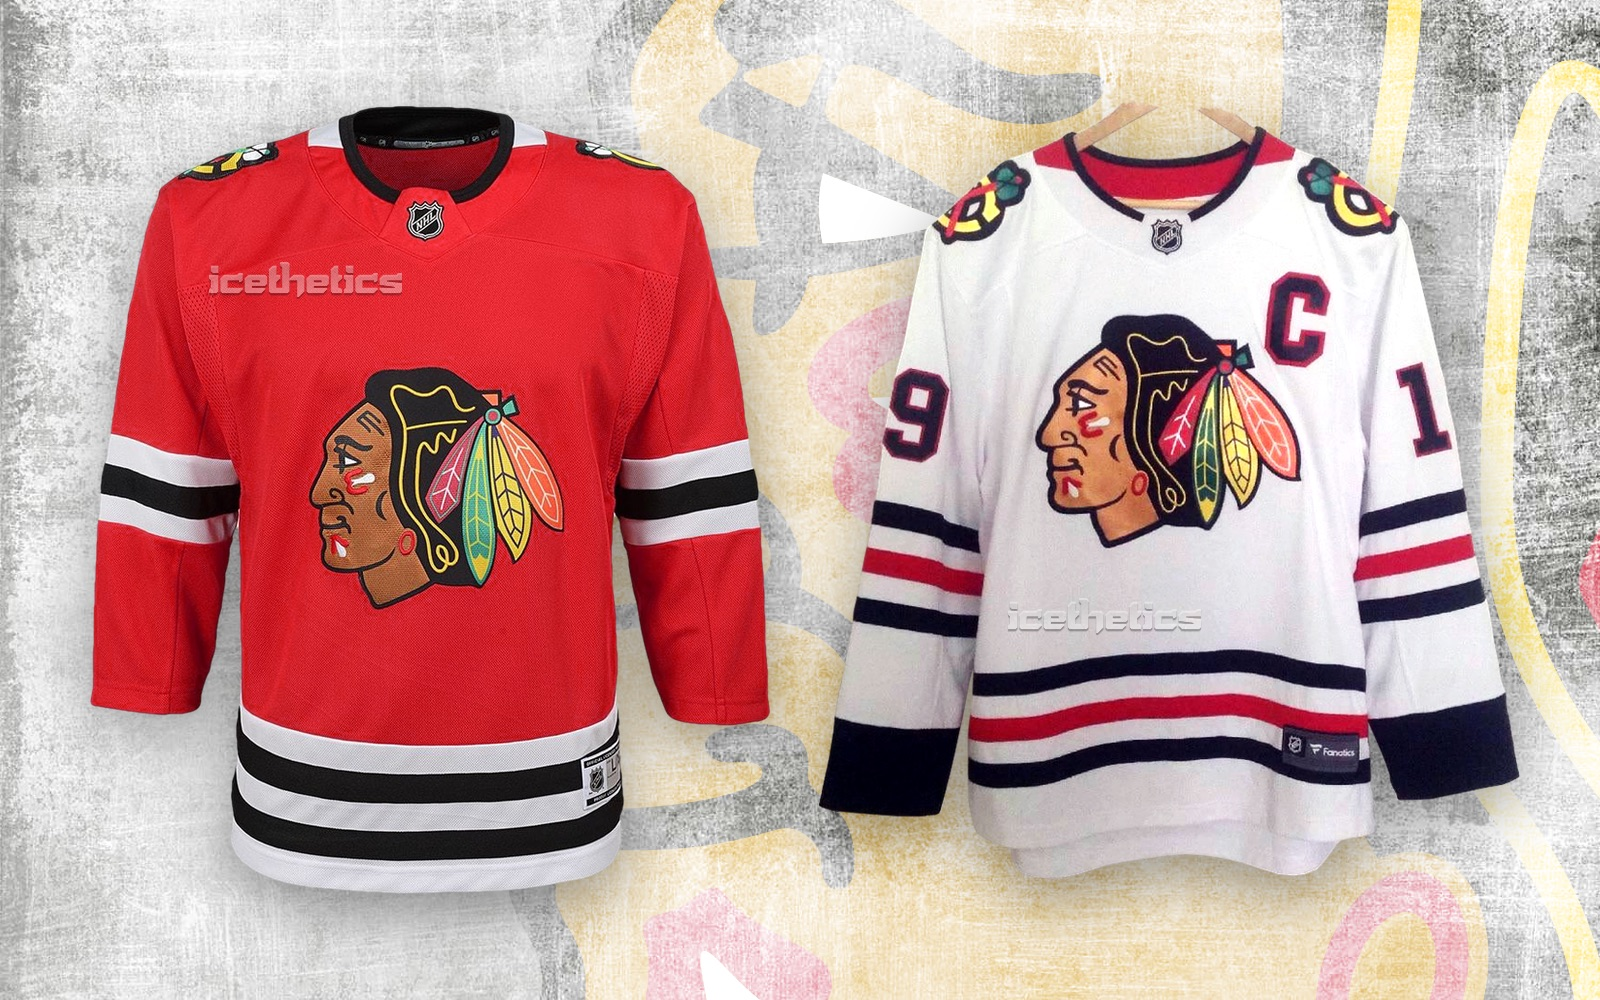 Early look at new Chicago Blackhawks jersey collars